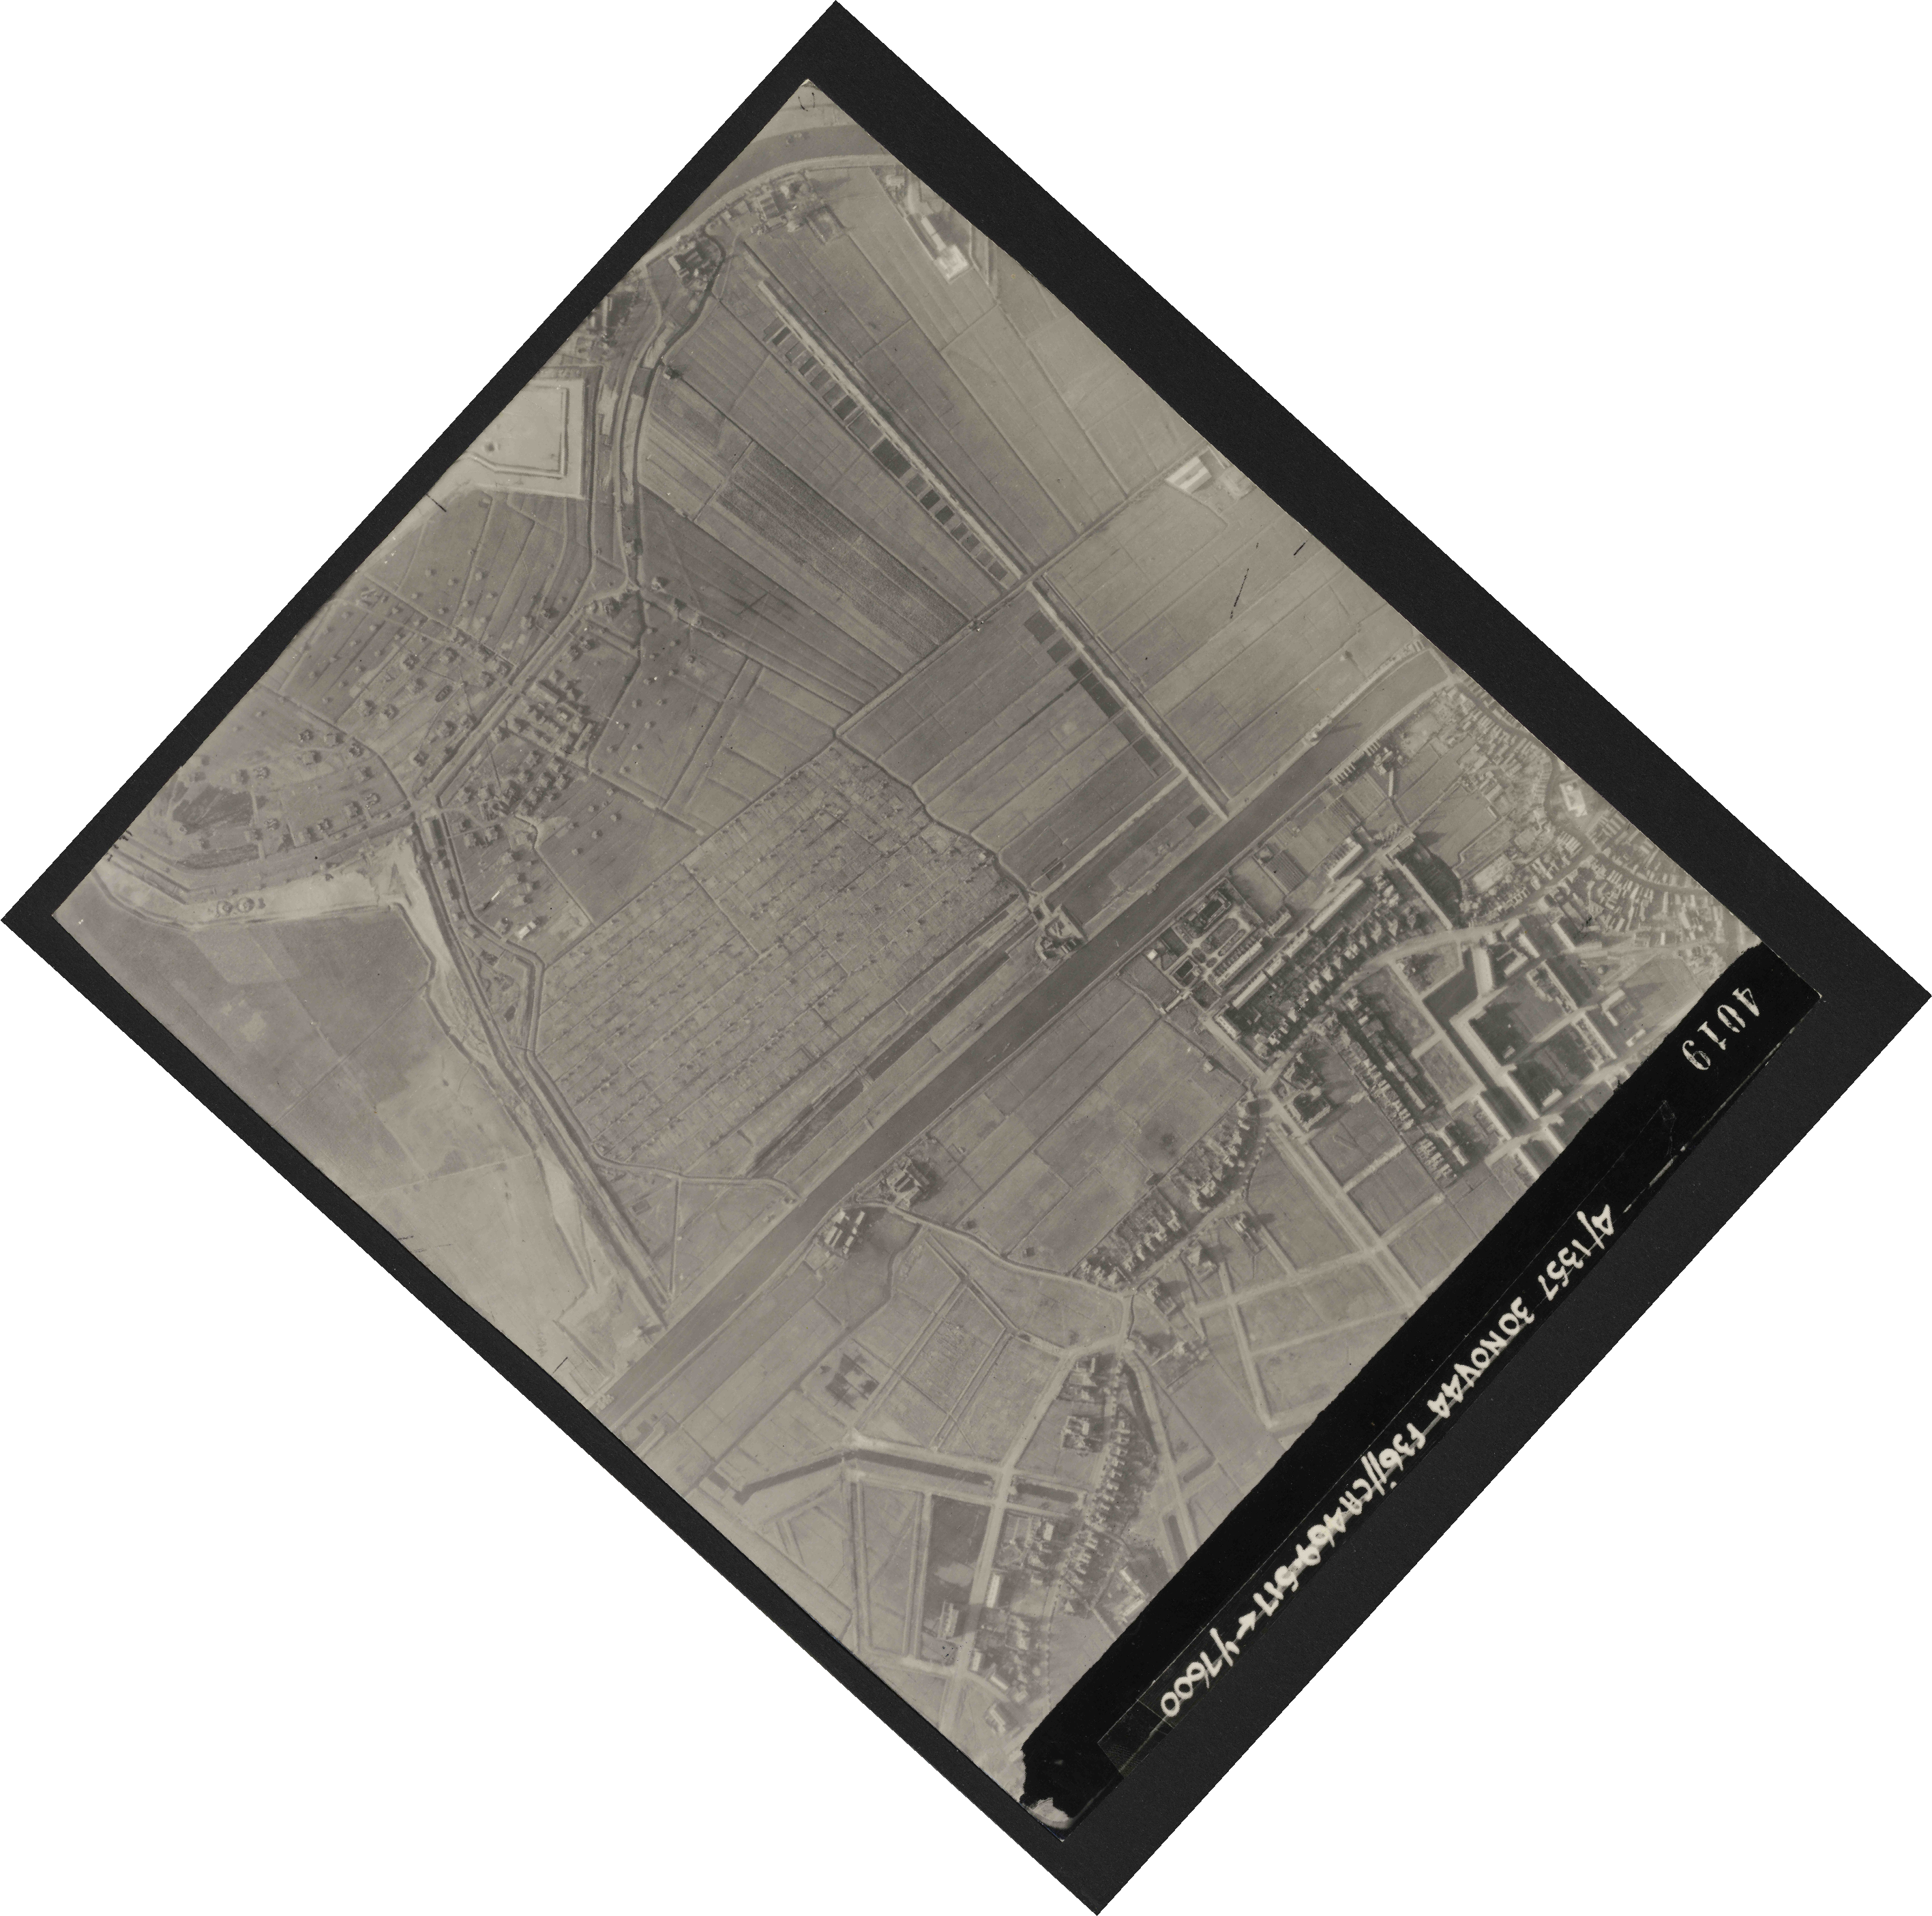 Collection RAF aerial photos 1940-1945 - flight 259, run 02, photo 4019